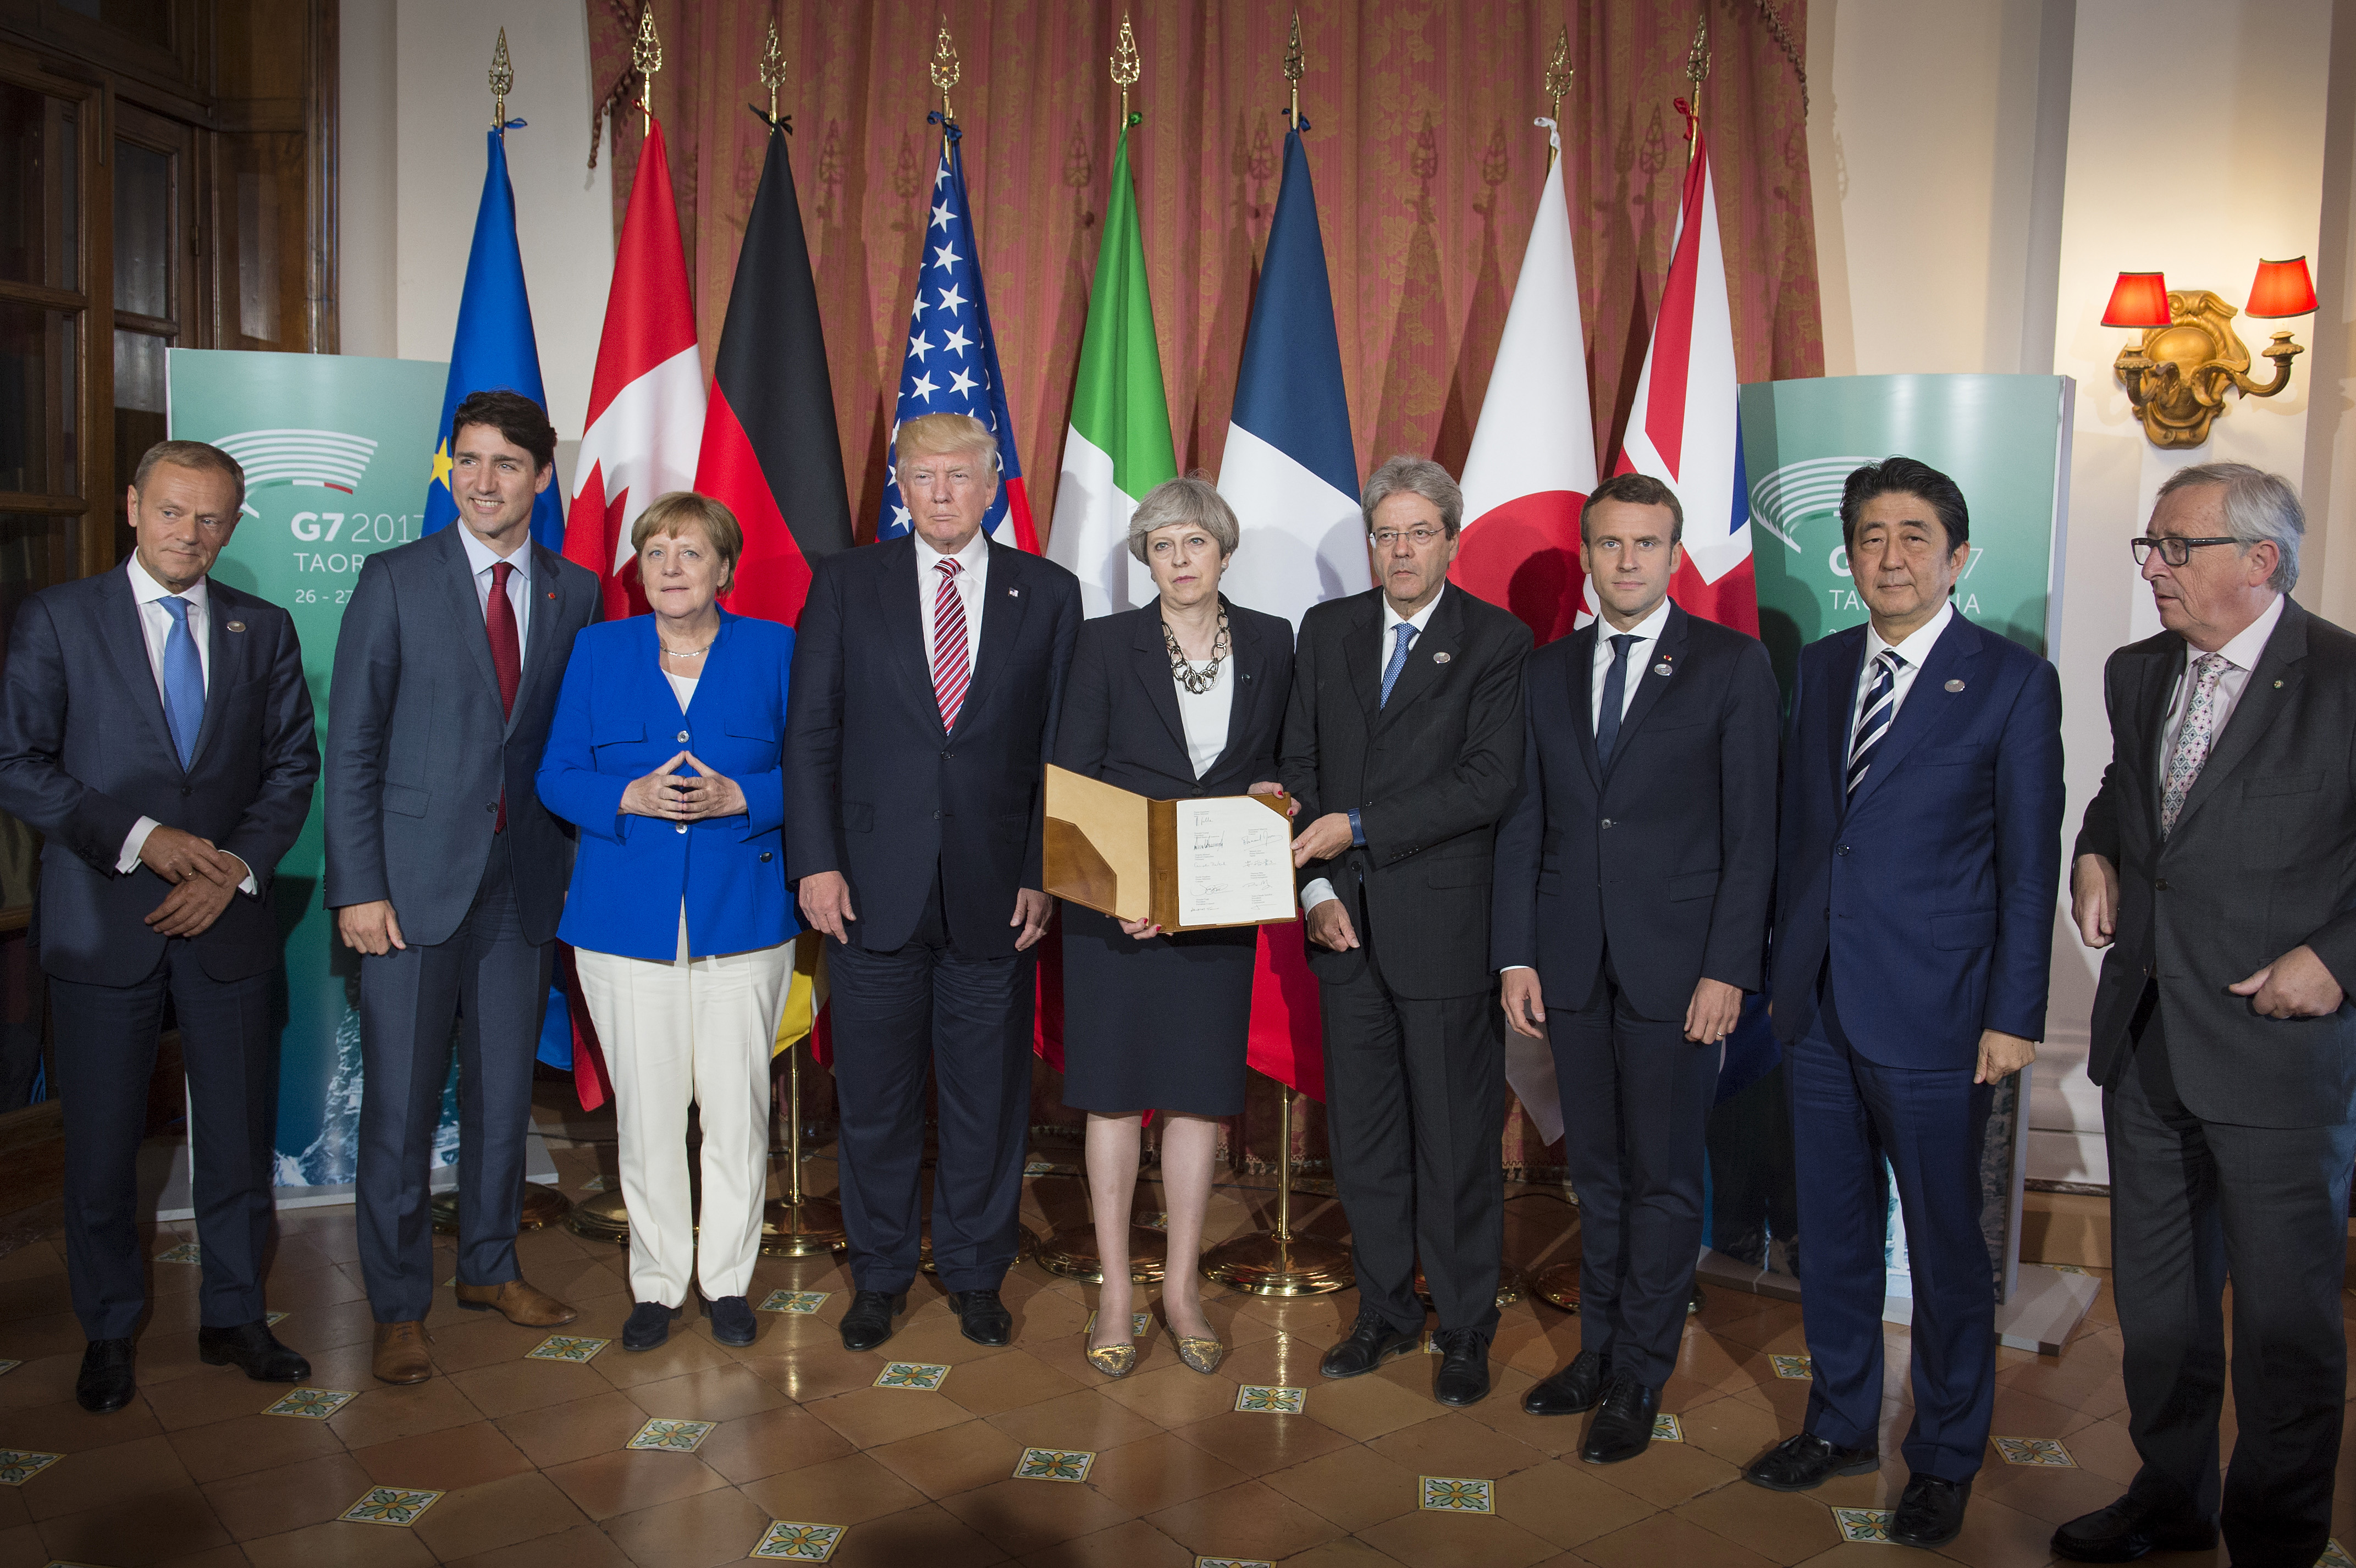 G7 Summit What Is Distracting Each World Leader Time